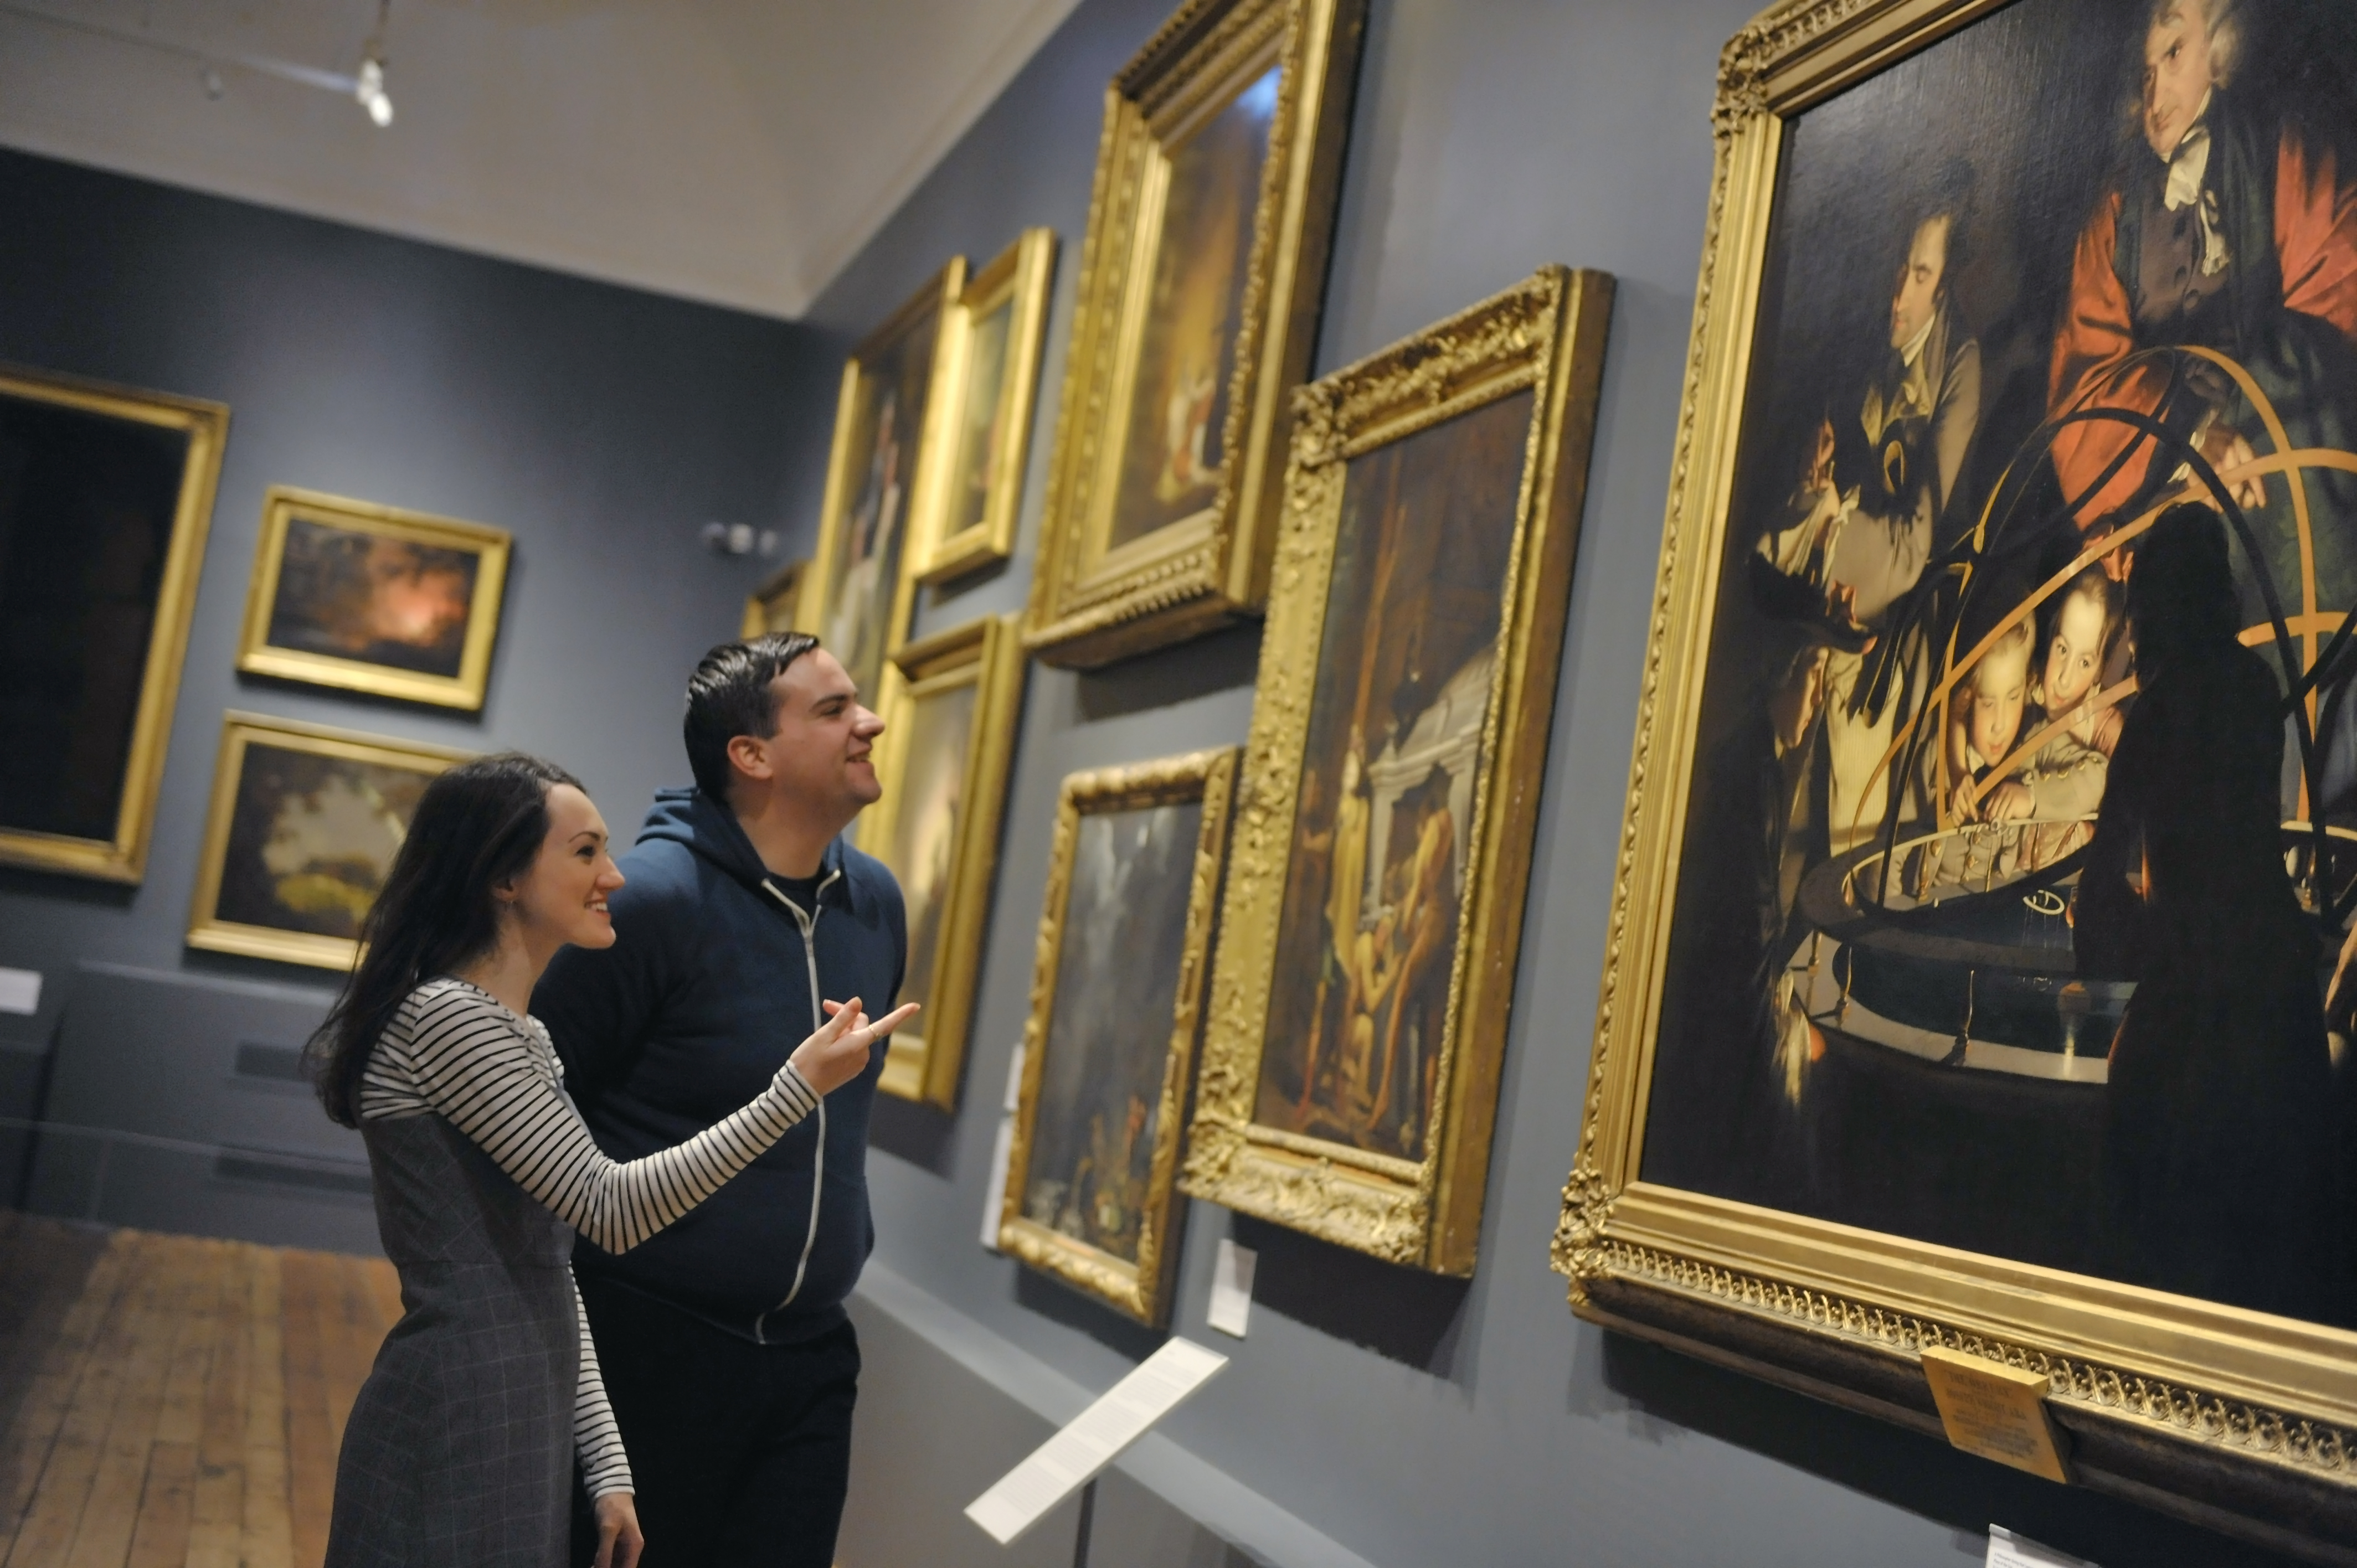 the-joseph-wright-gallery-the-museum-and-art-gallery-derby-credit-derby-museums-trust